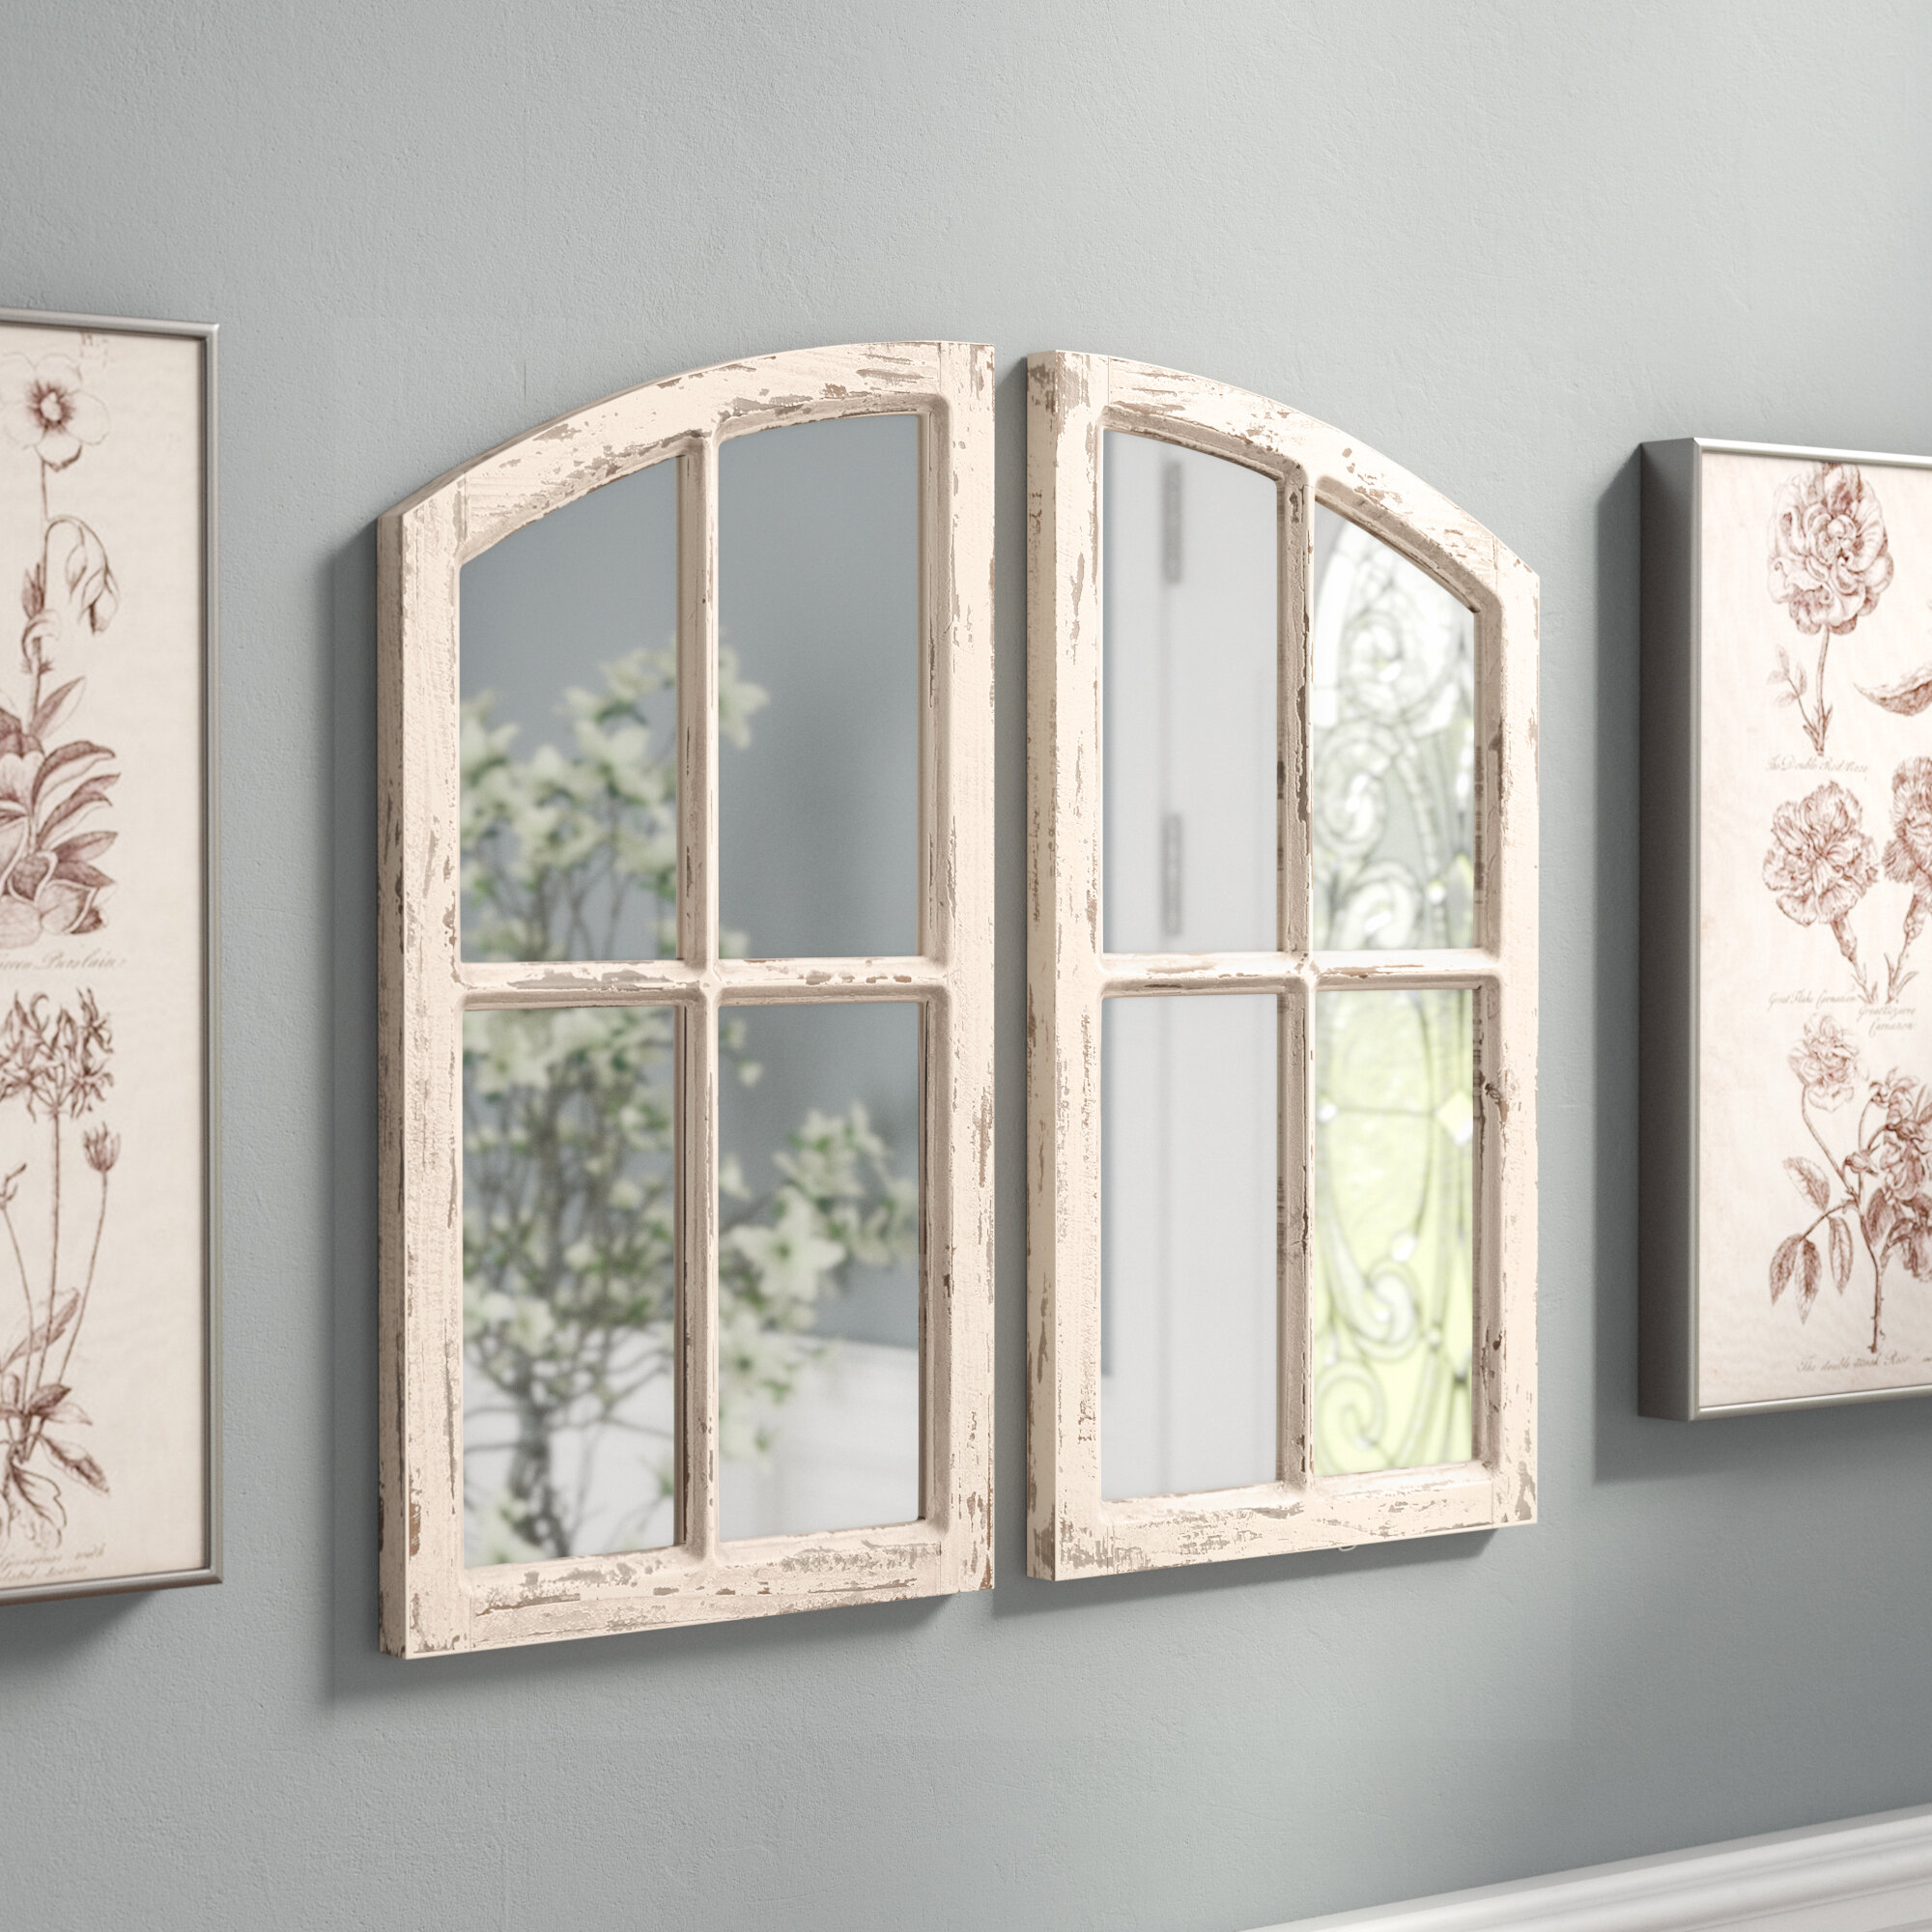 Famous 2 Piece Panel Wood Wall Decor Sets (Set Of 2) Regarding Ophelia & Co (View 4 of 20)